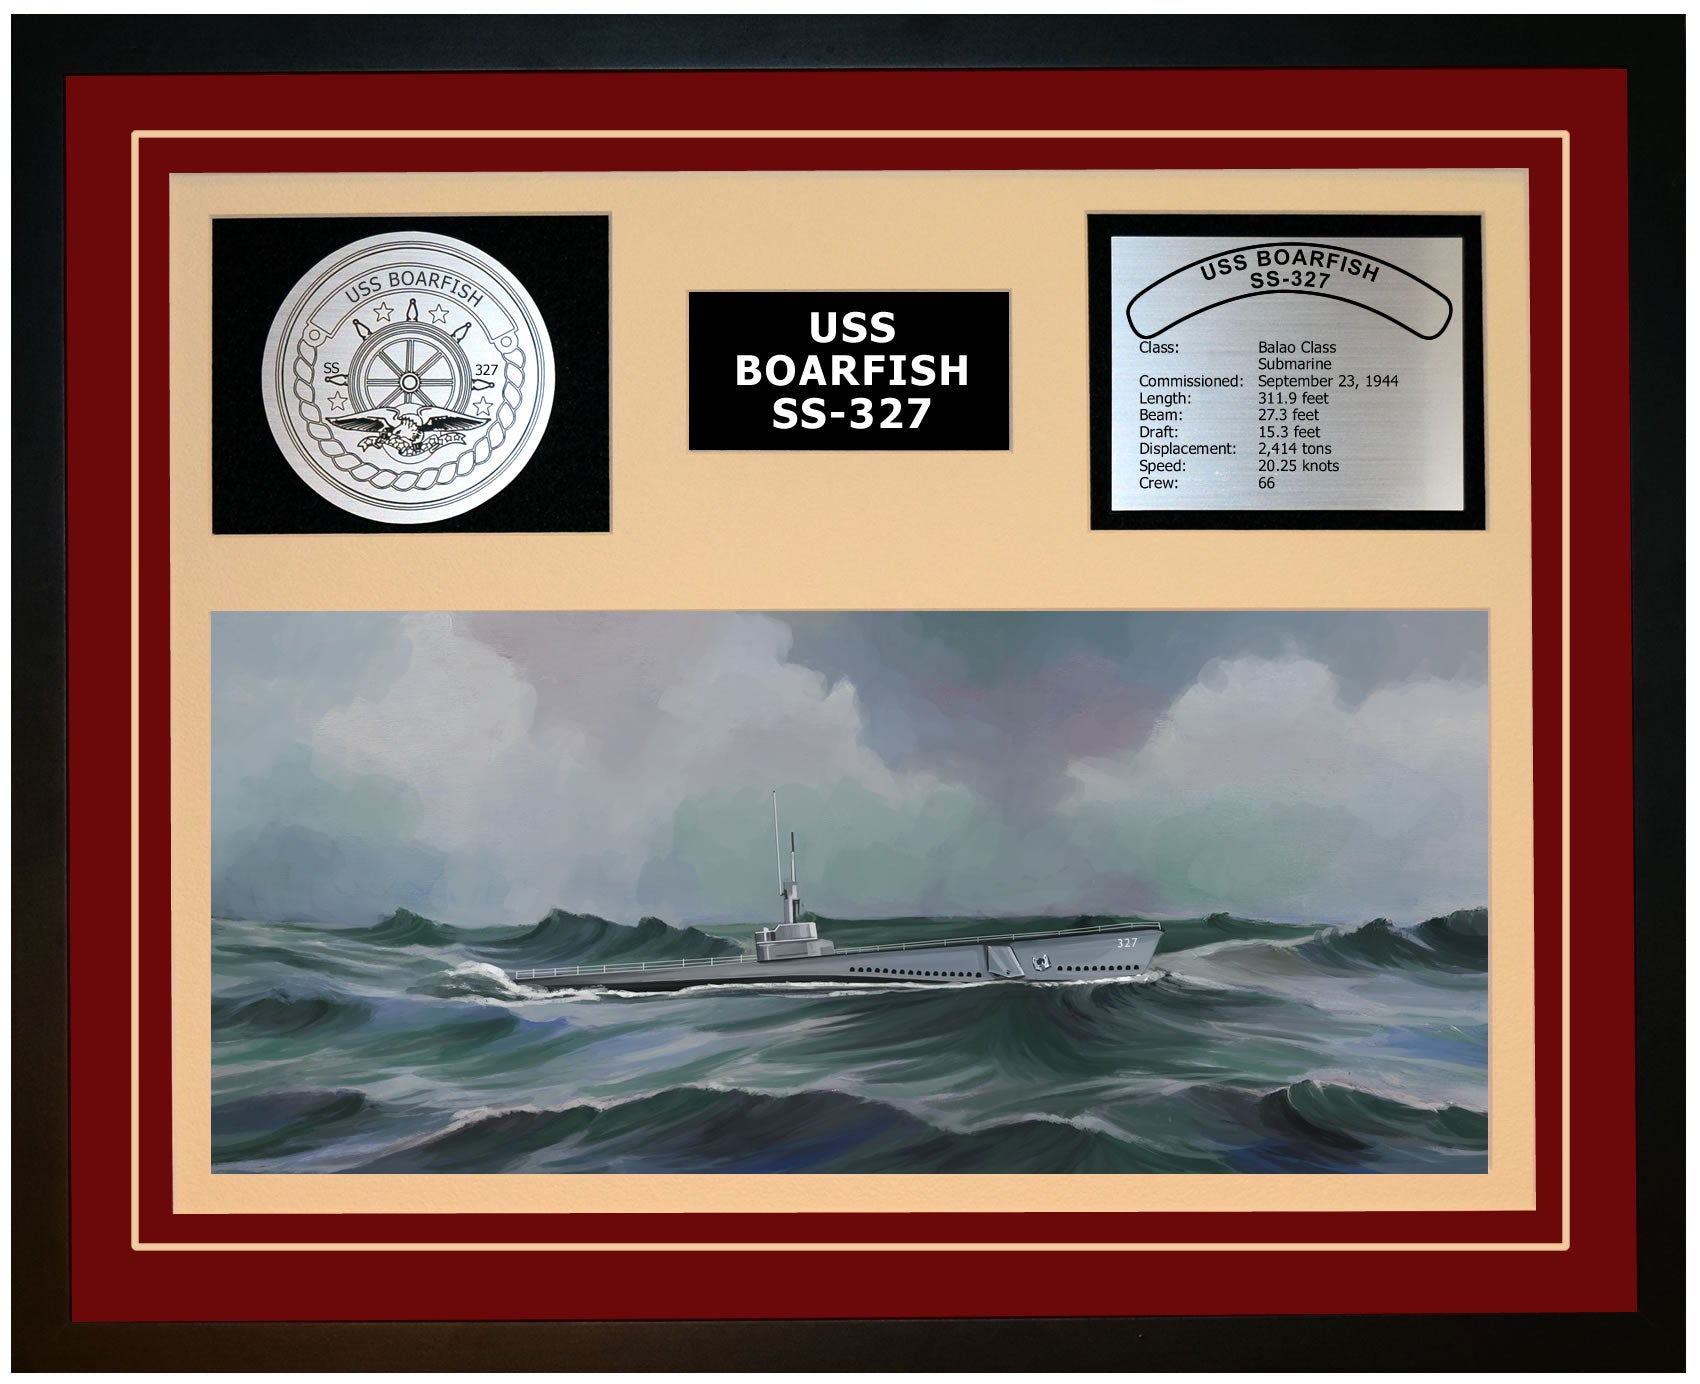 USS BOARFISH SS-327 Framed Navy Ship Display Burgundy